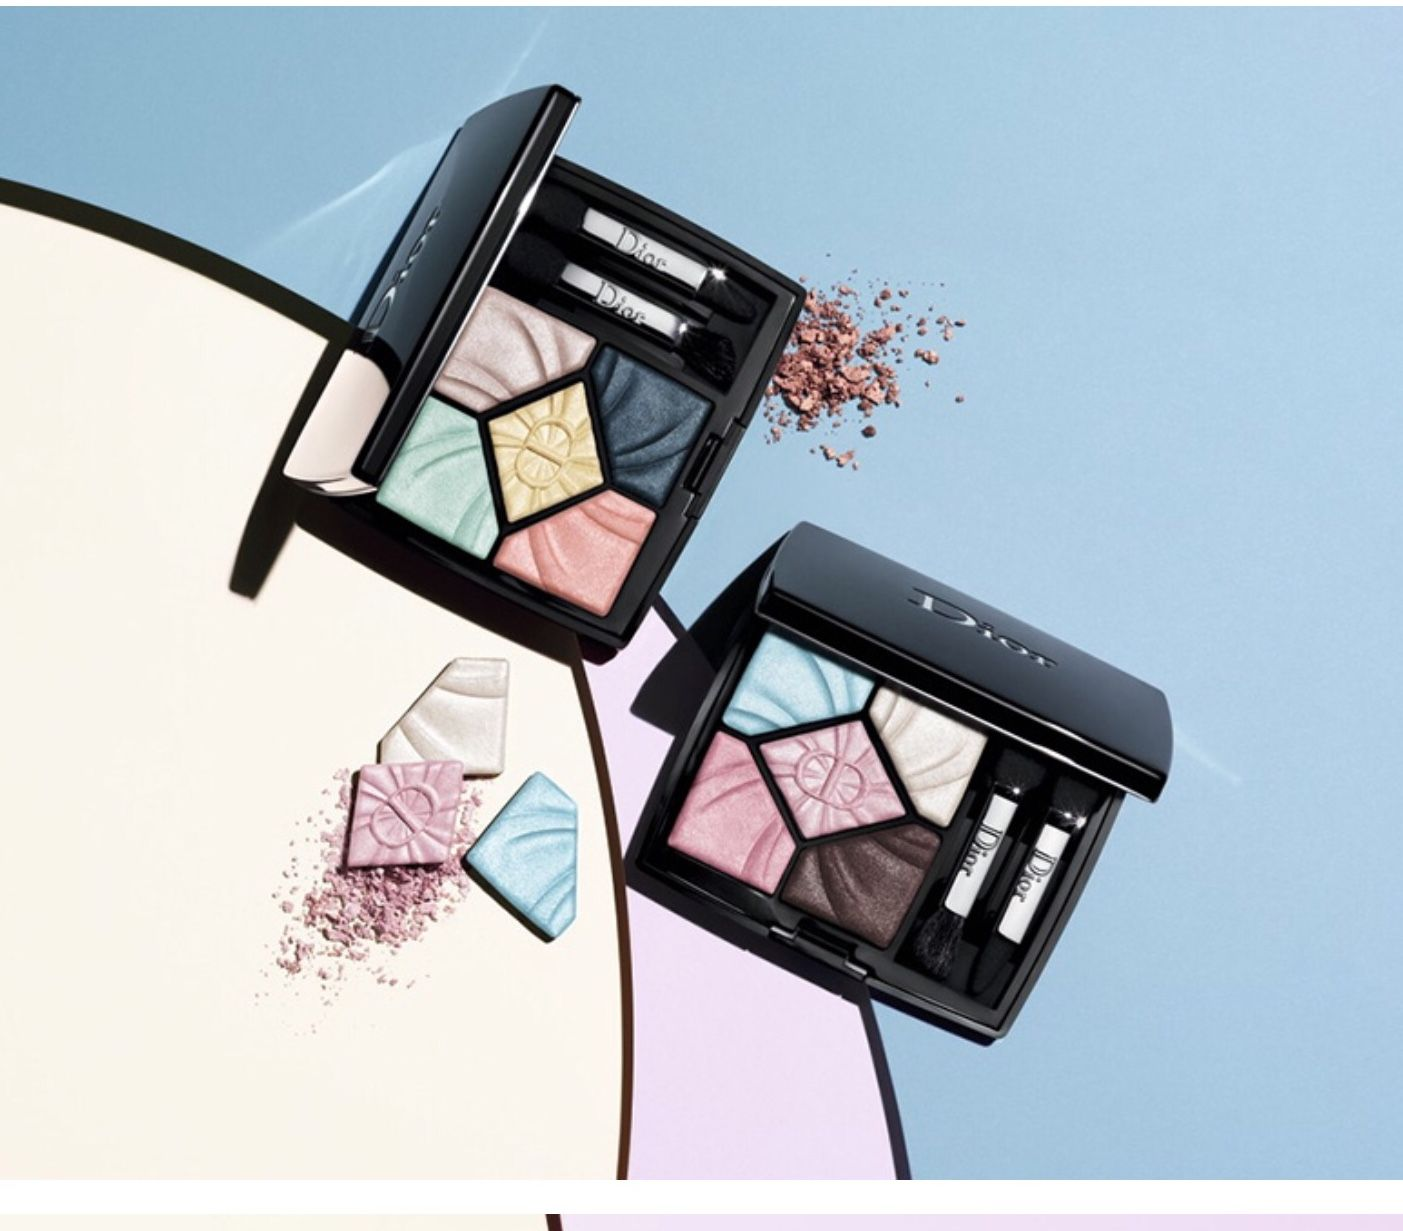 Dior Spring 2019 Eyeshadow Palettes With Images Makeup